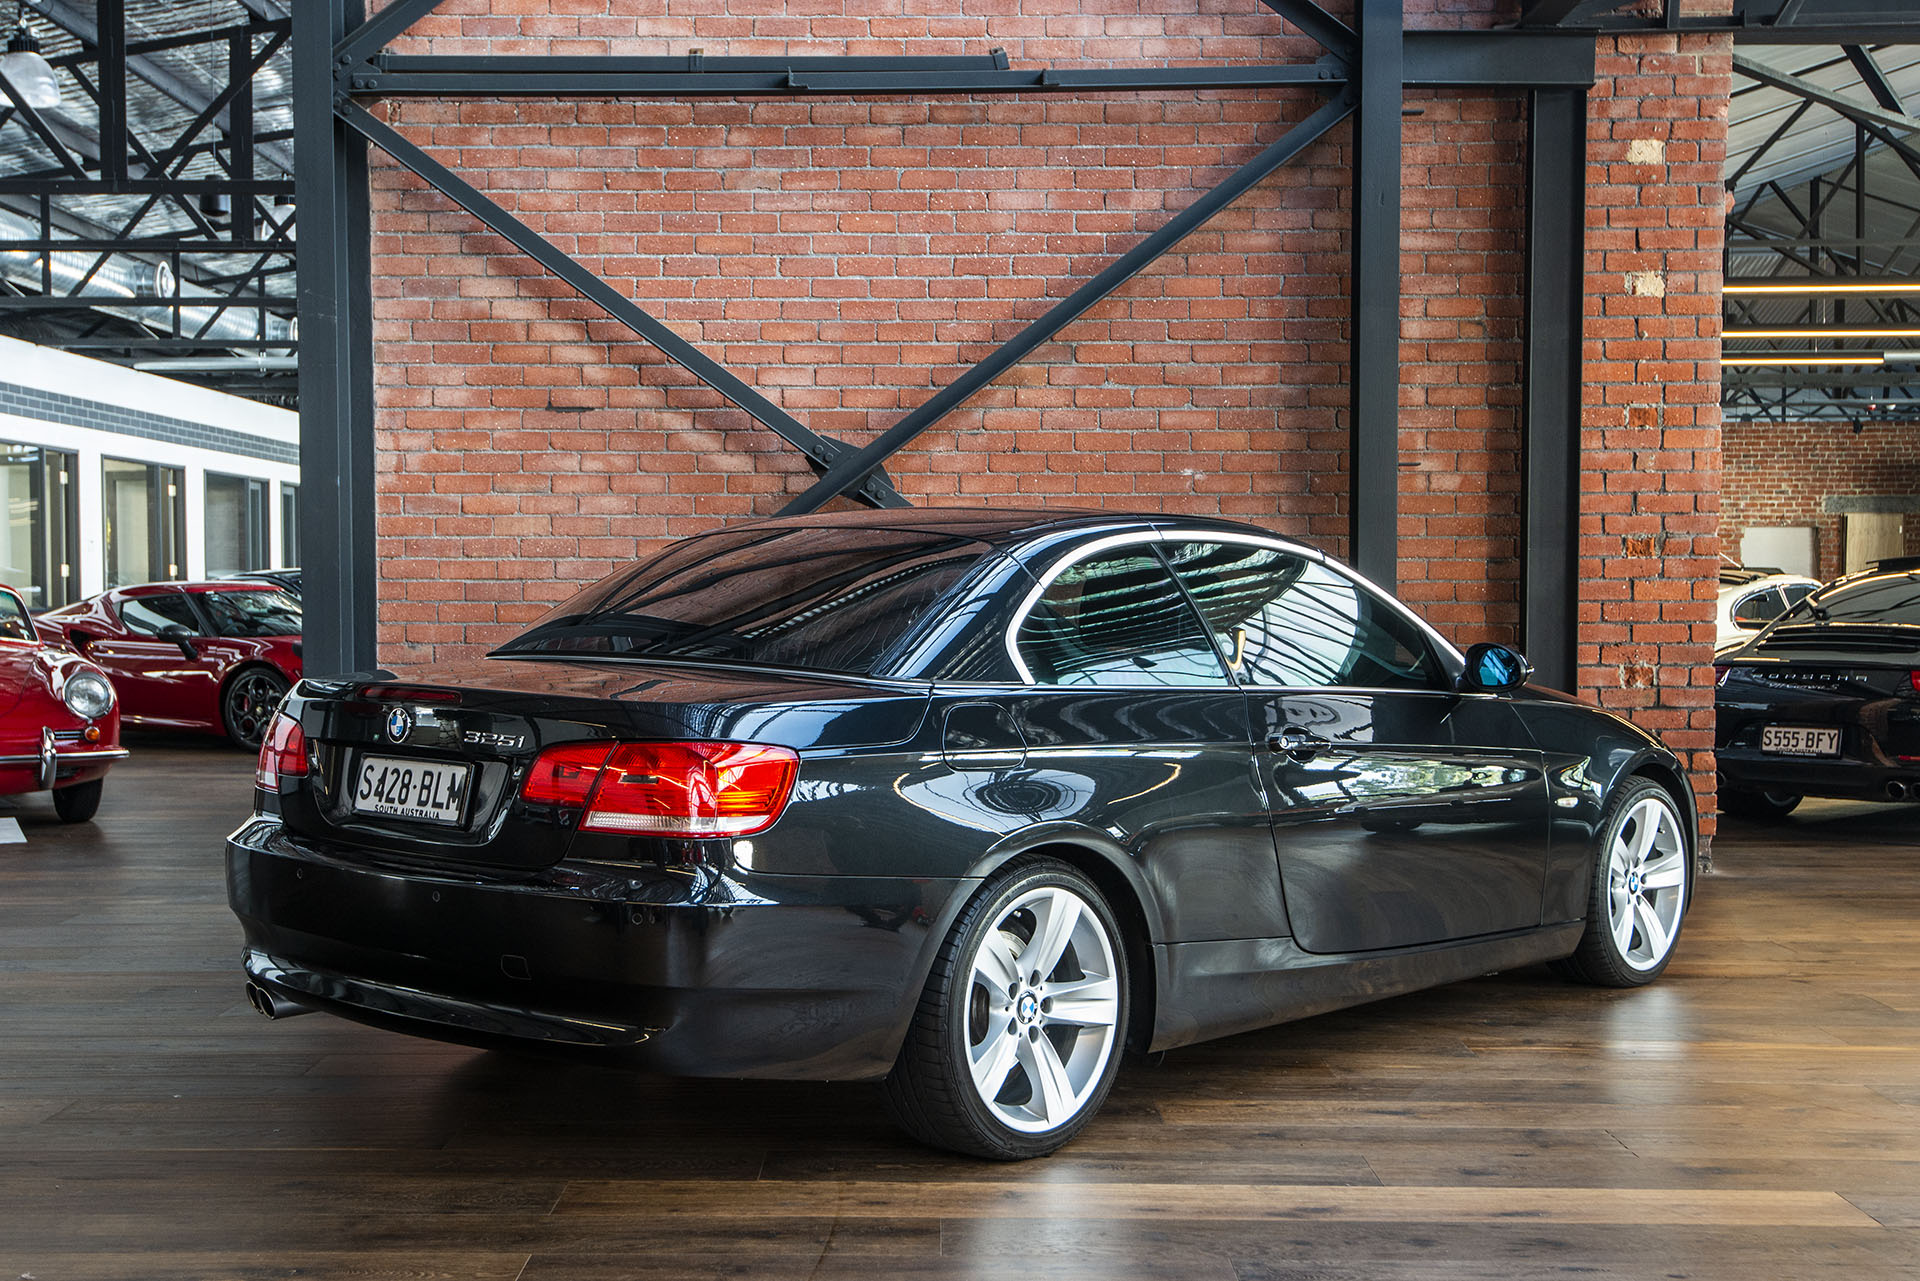 Electric Cars For Sale >> 2008 BMW E93 325i Convertible - Richmonds - Classic and ...